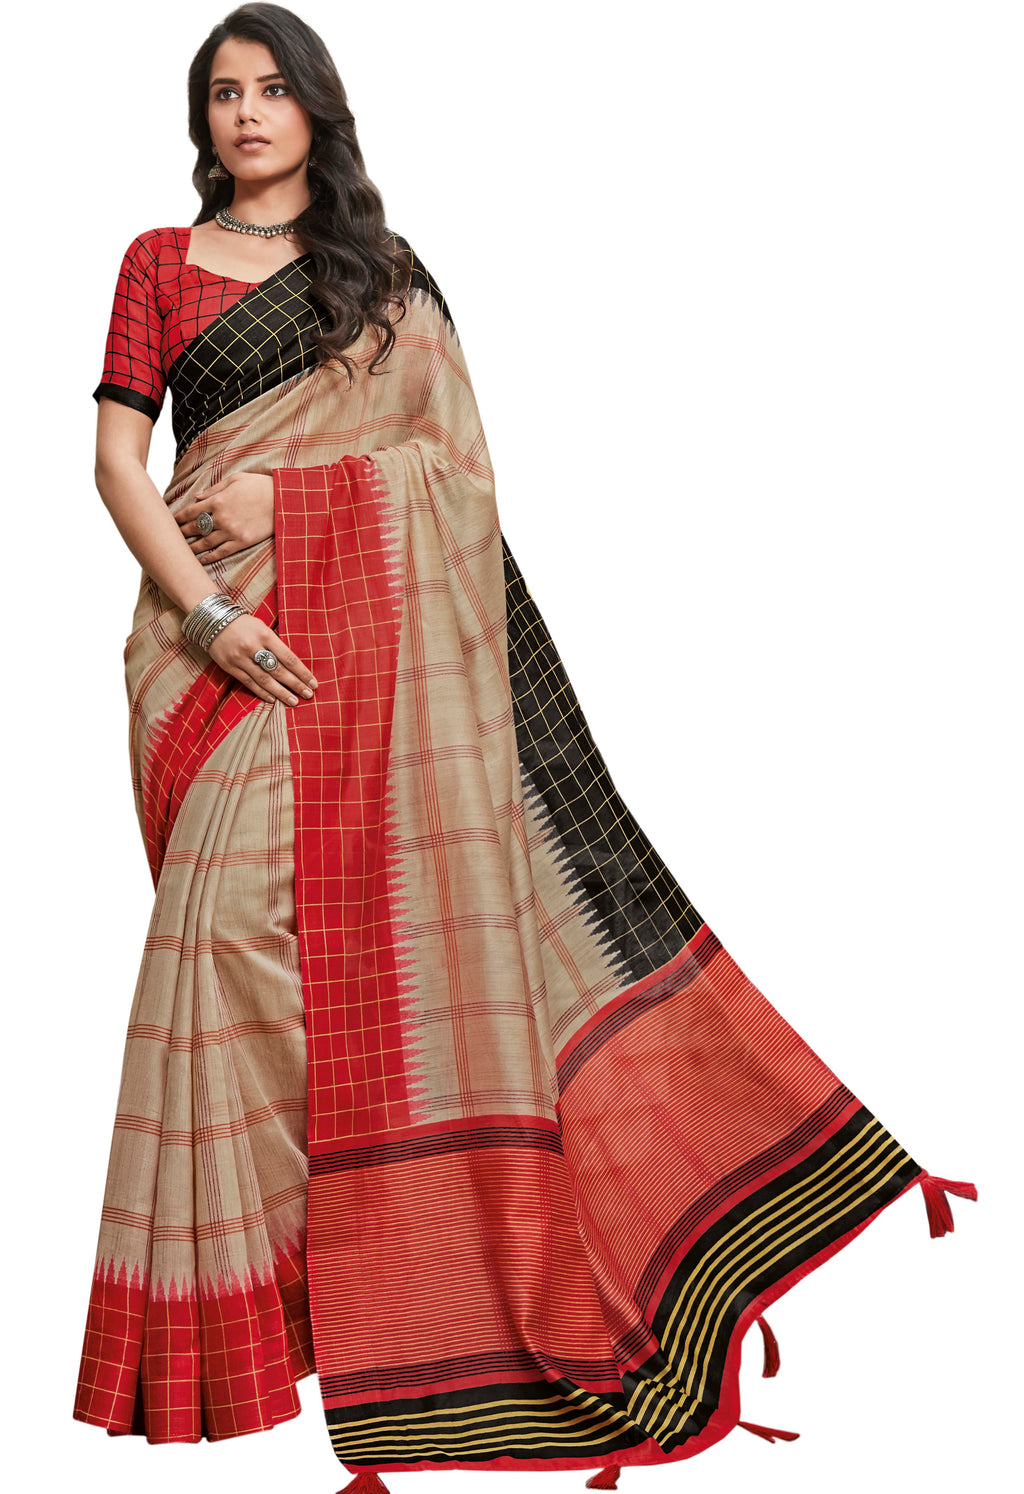 Beige & Red Color Cotton Festive & Function Wear Sarees NYF-8500